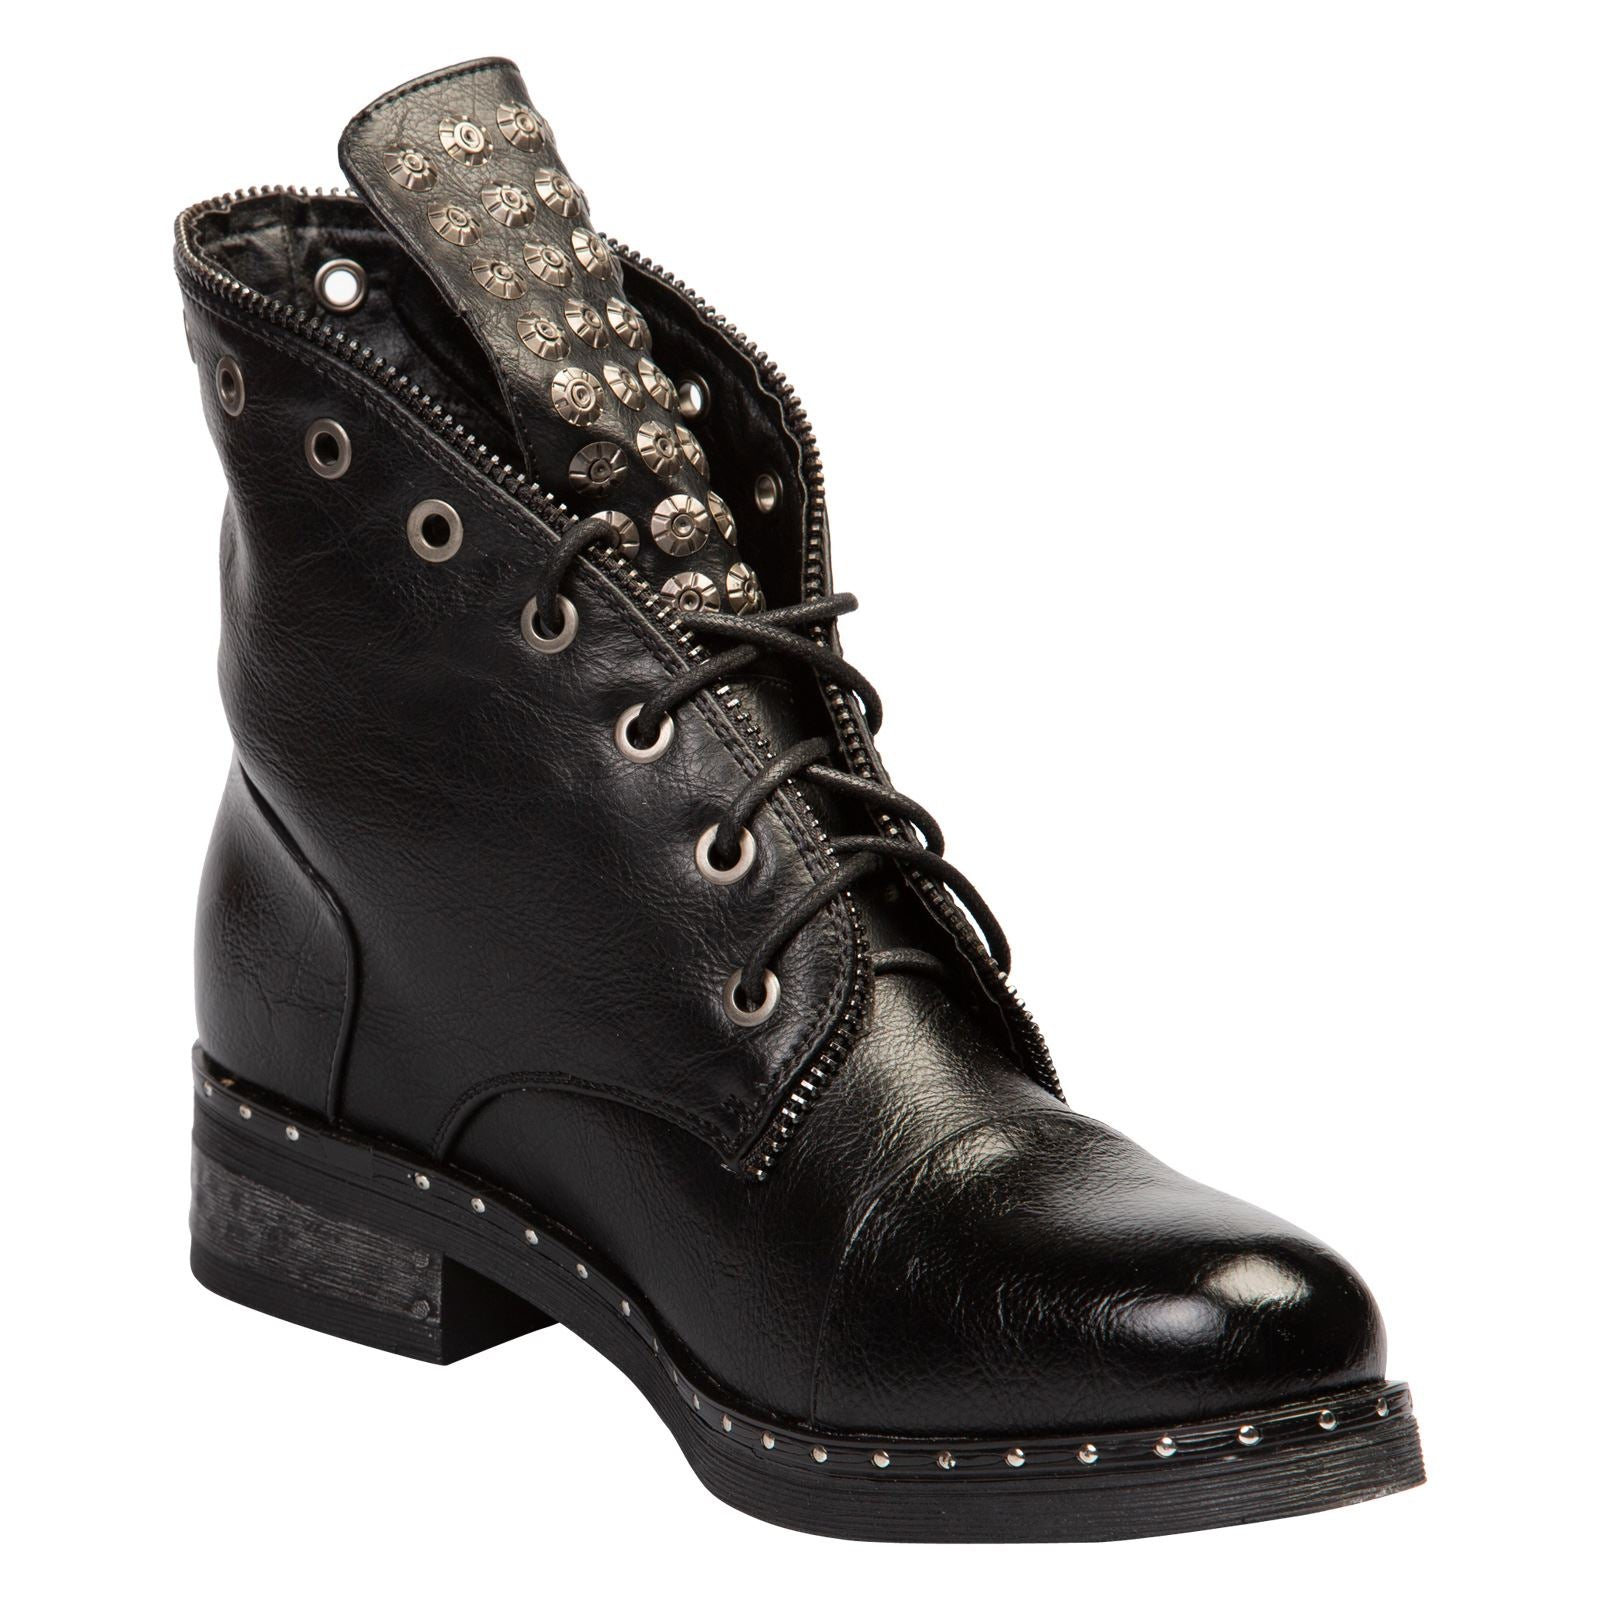 Finley Studded Ankle Boots in Black Faux Leather - Feet First Fashion